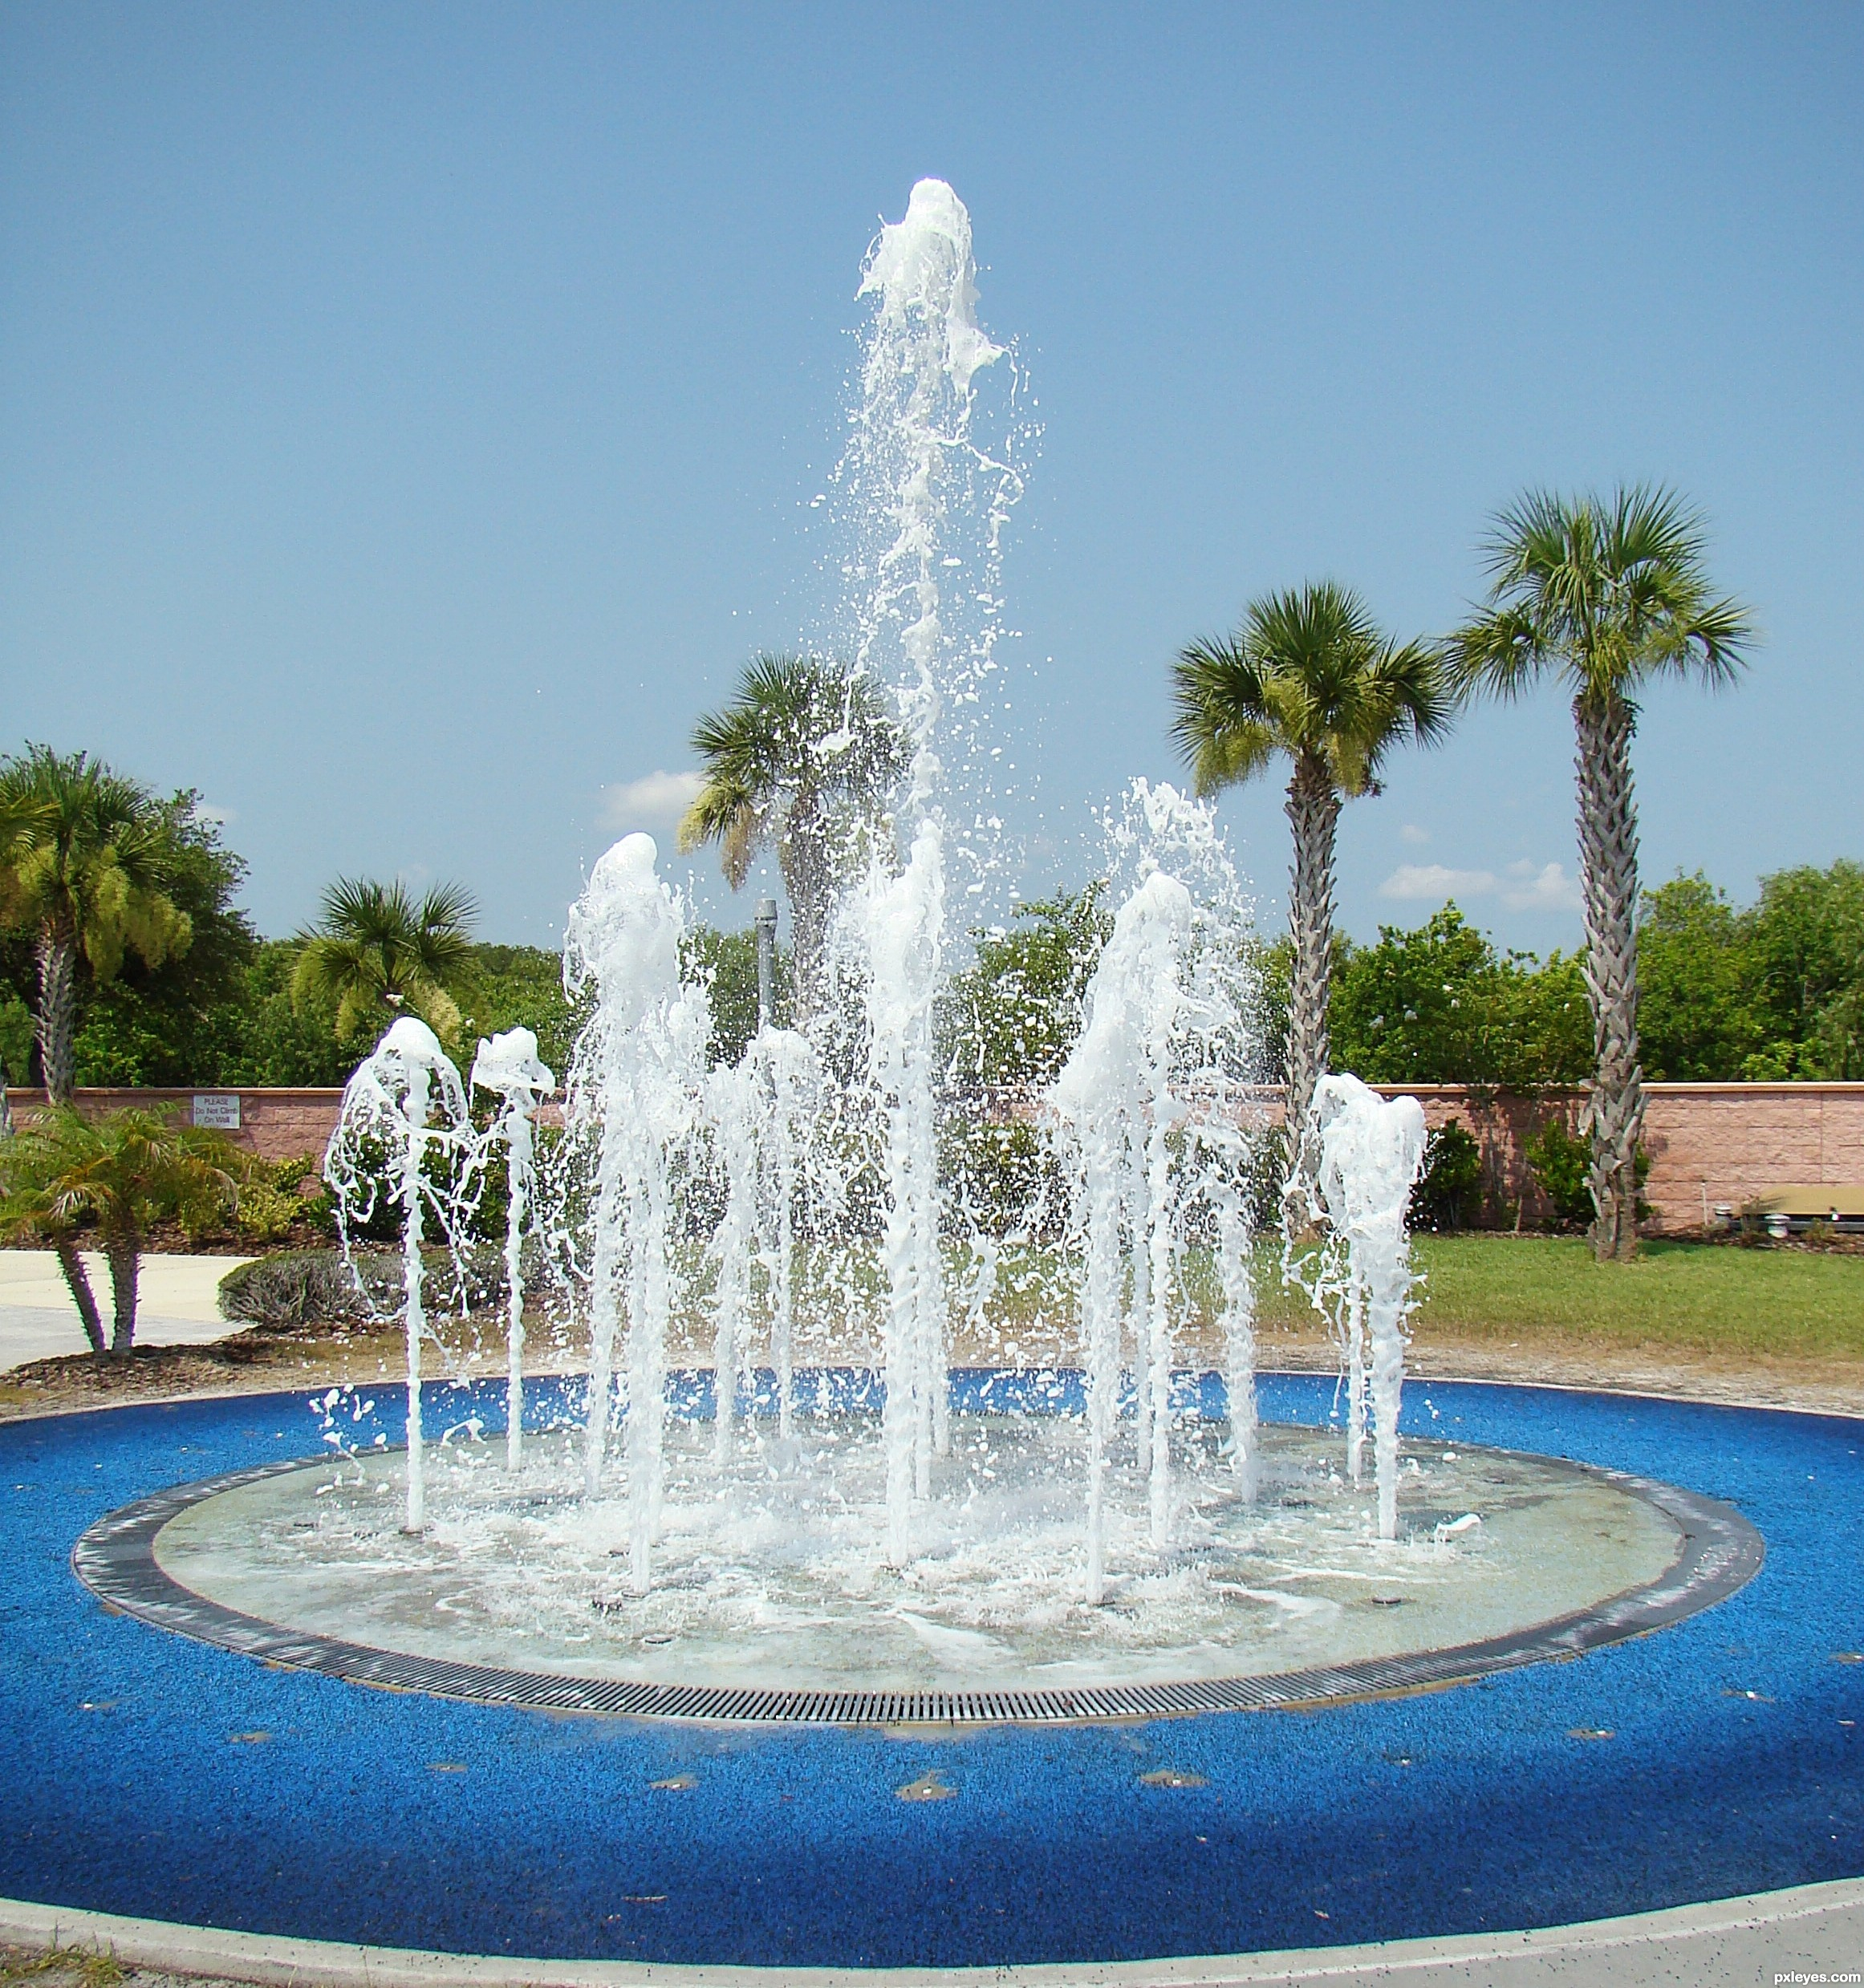 Dancing Water Picture By Poetress59 For Water Fountains 2 Photography Contest Pxleyes Com